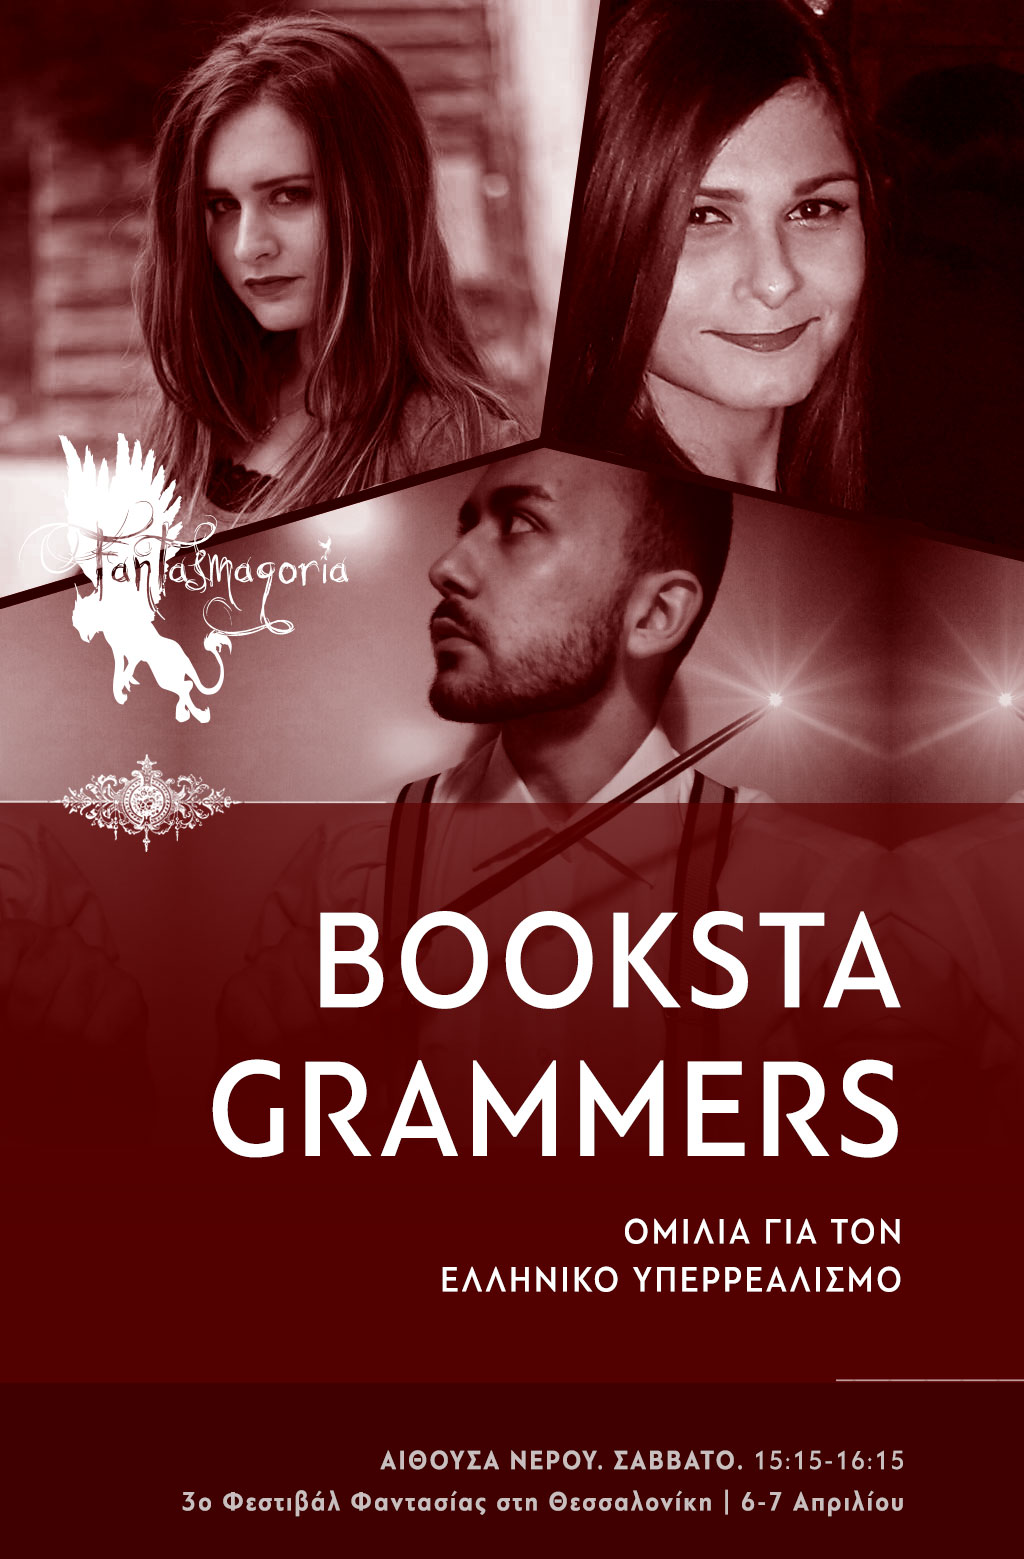 2019-Fantasmagoria-Adult-Bookstagrammers